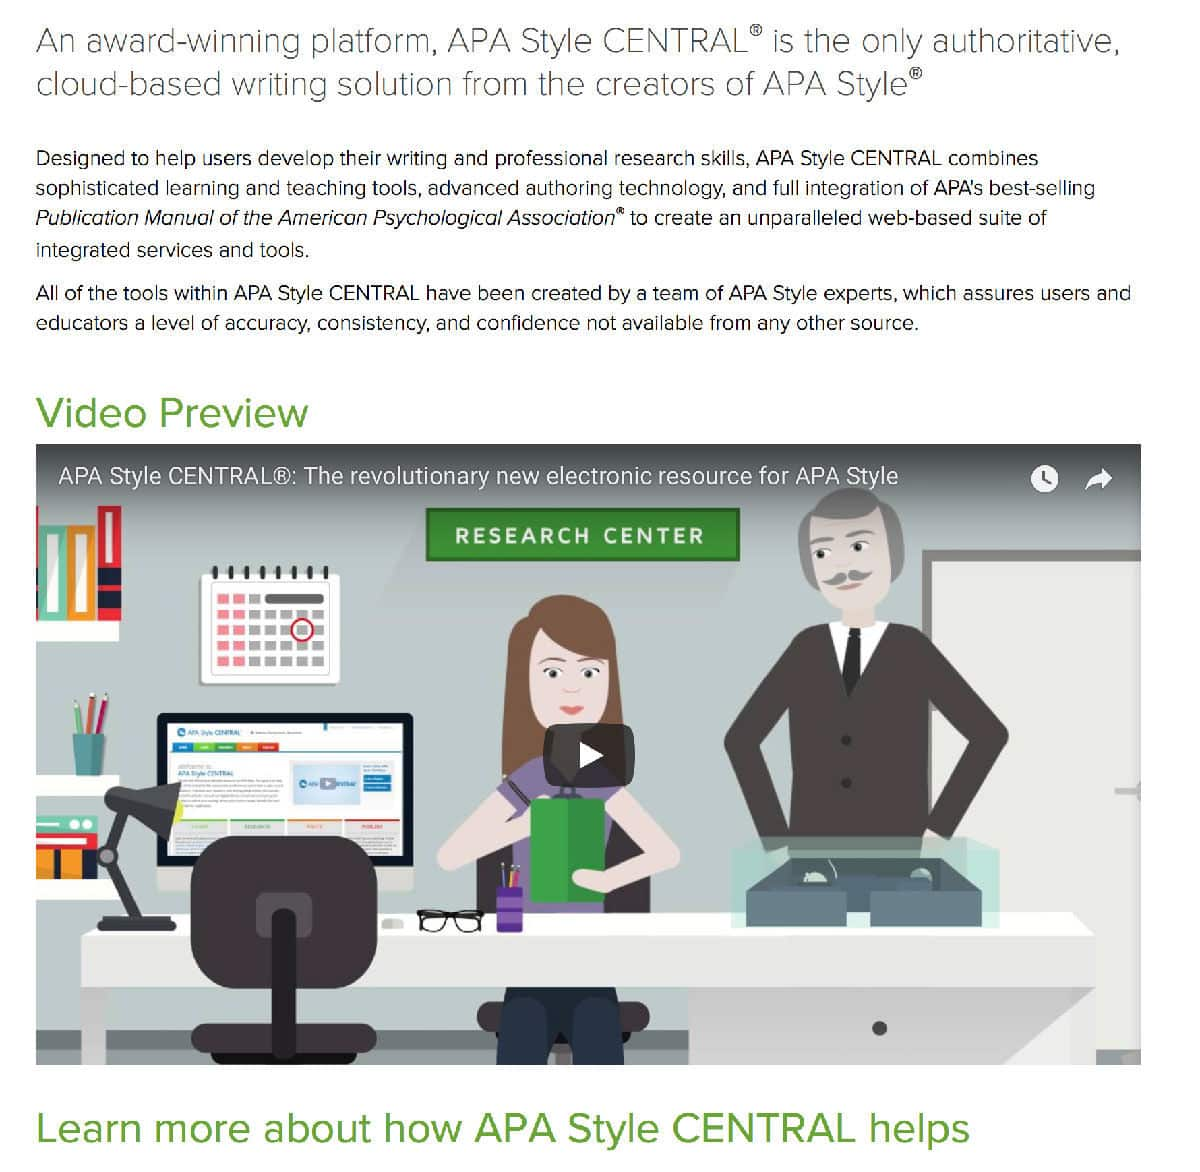 APA-Style Central